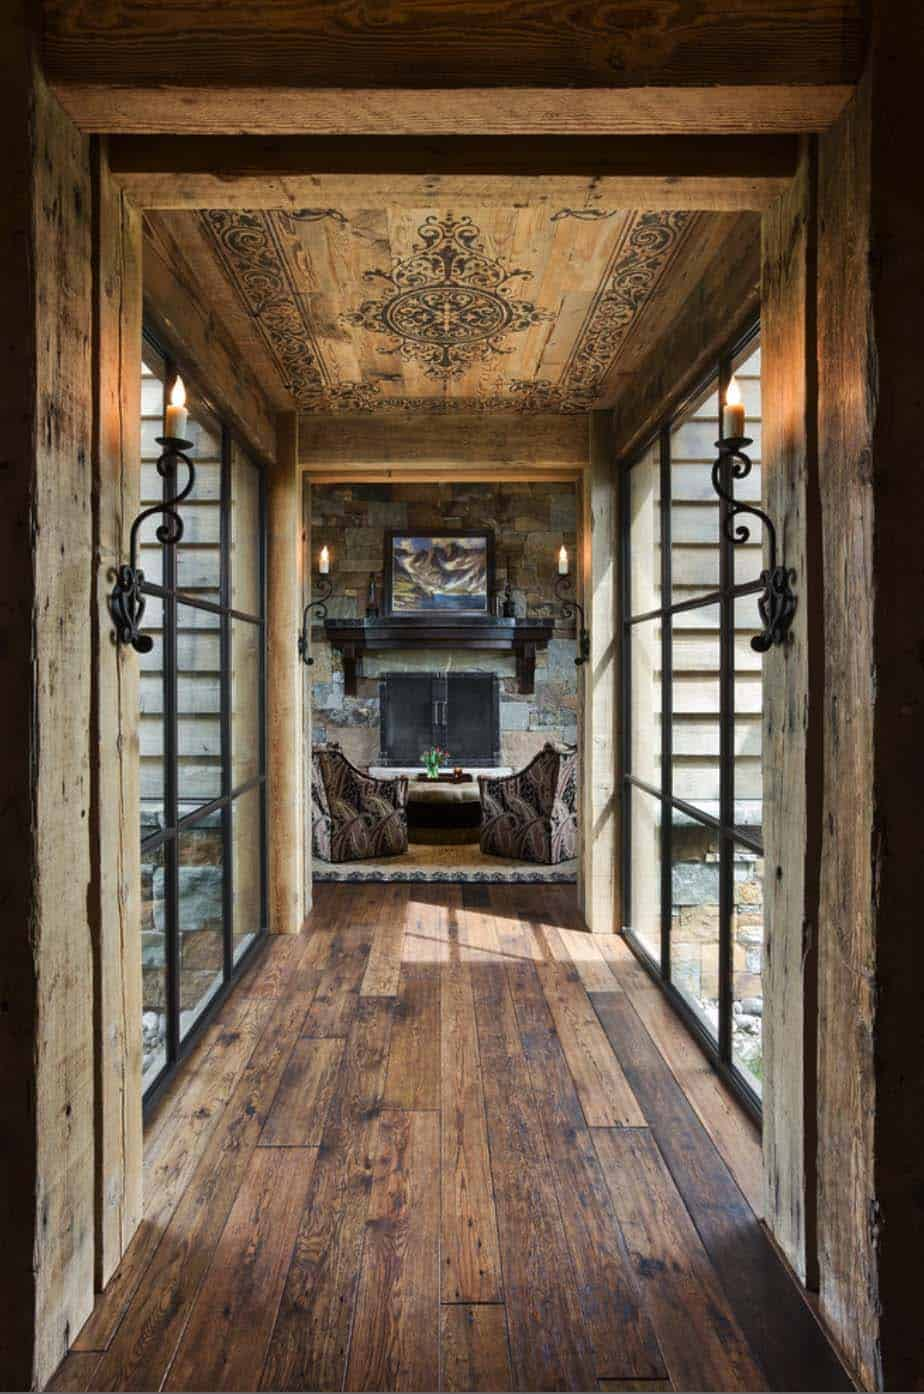 Small Home Interior Design Ideas: Rustic Yet Refined Mountain Home Surrounded By Montana's